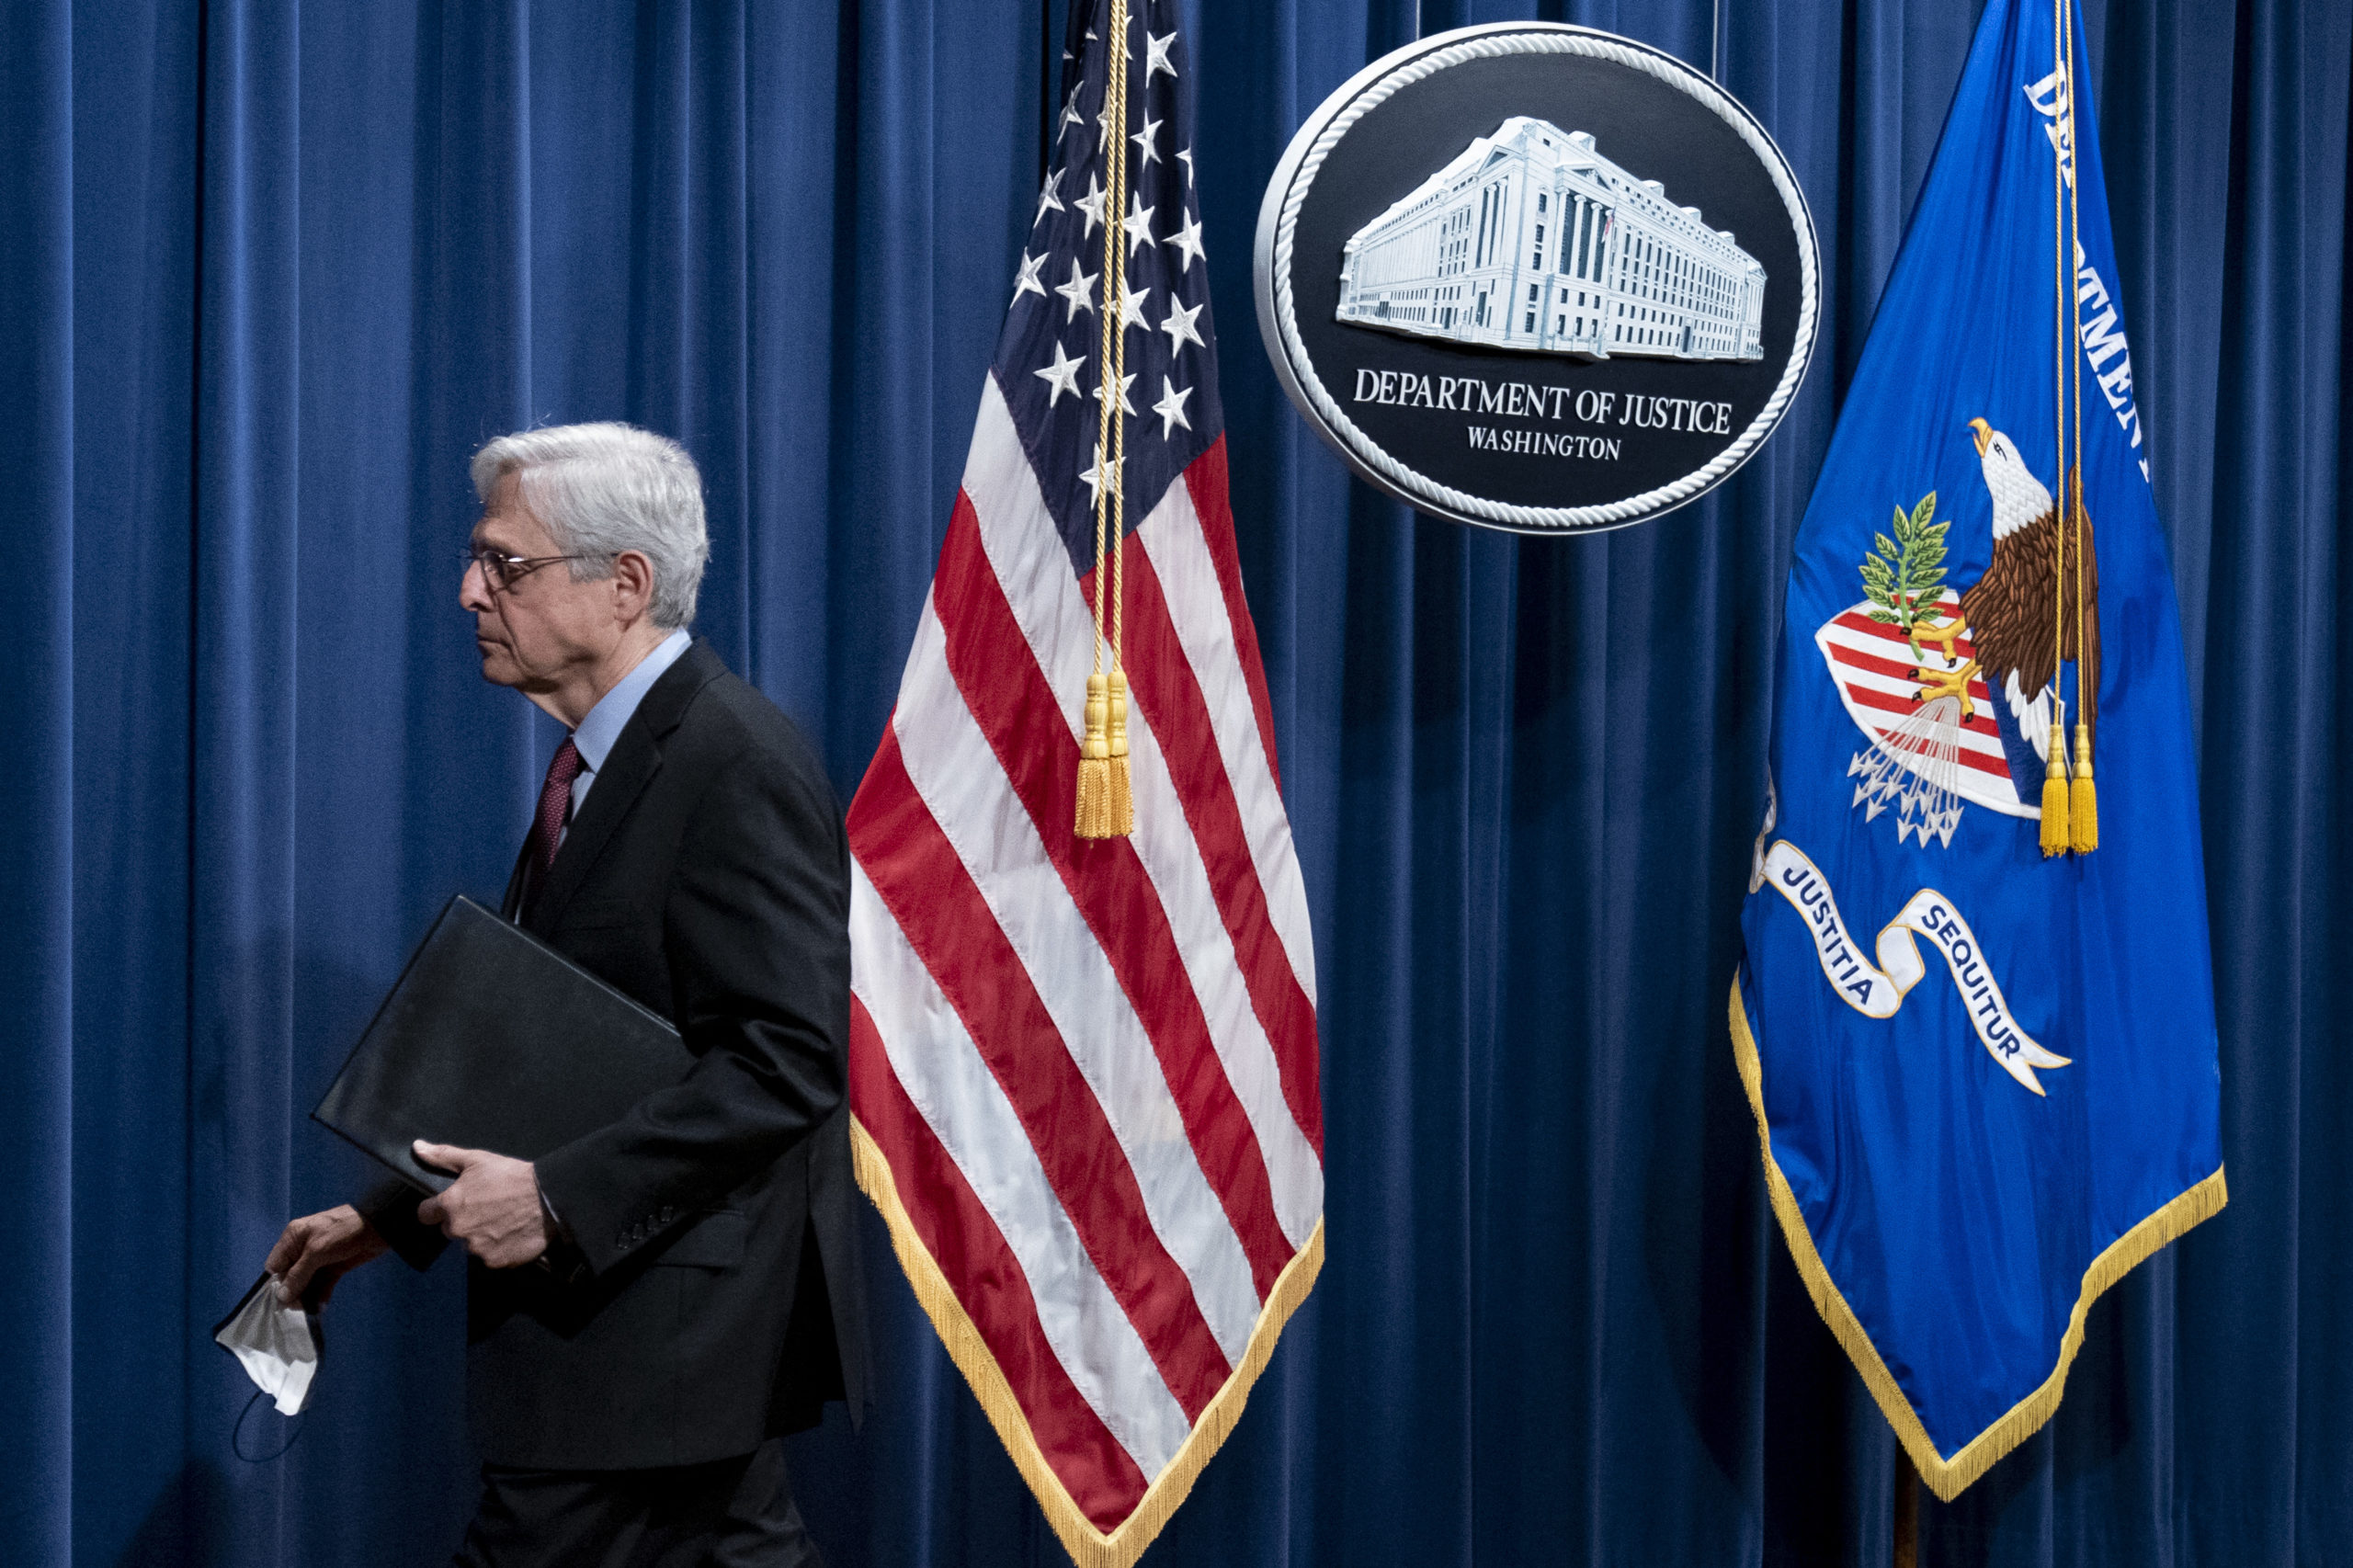 Attorney General Merrick Garland leaves after speaking at the Department of Justice on Wednesday. (Andrew Harnik/Pool/AFP via Getty Images)